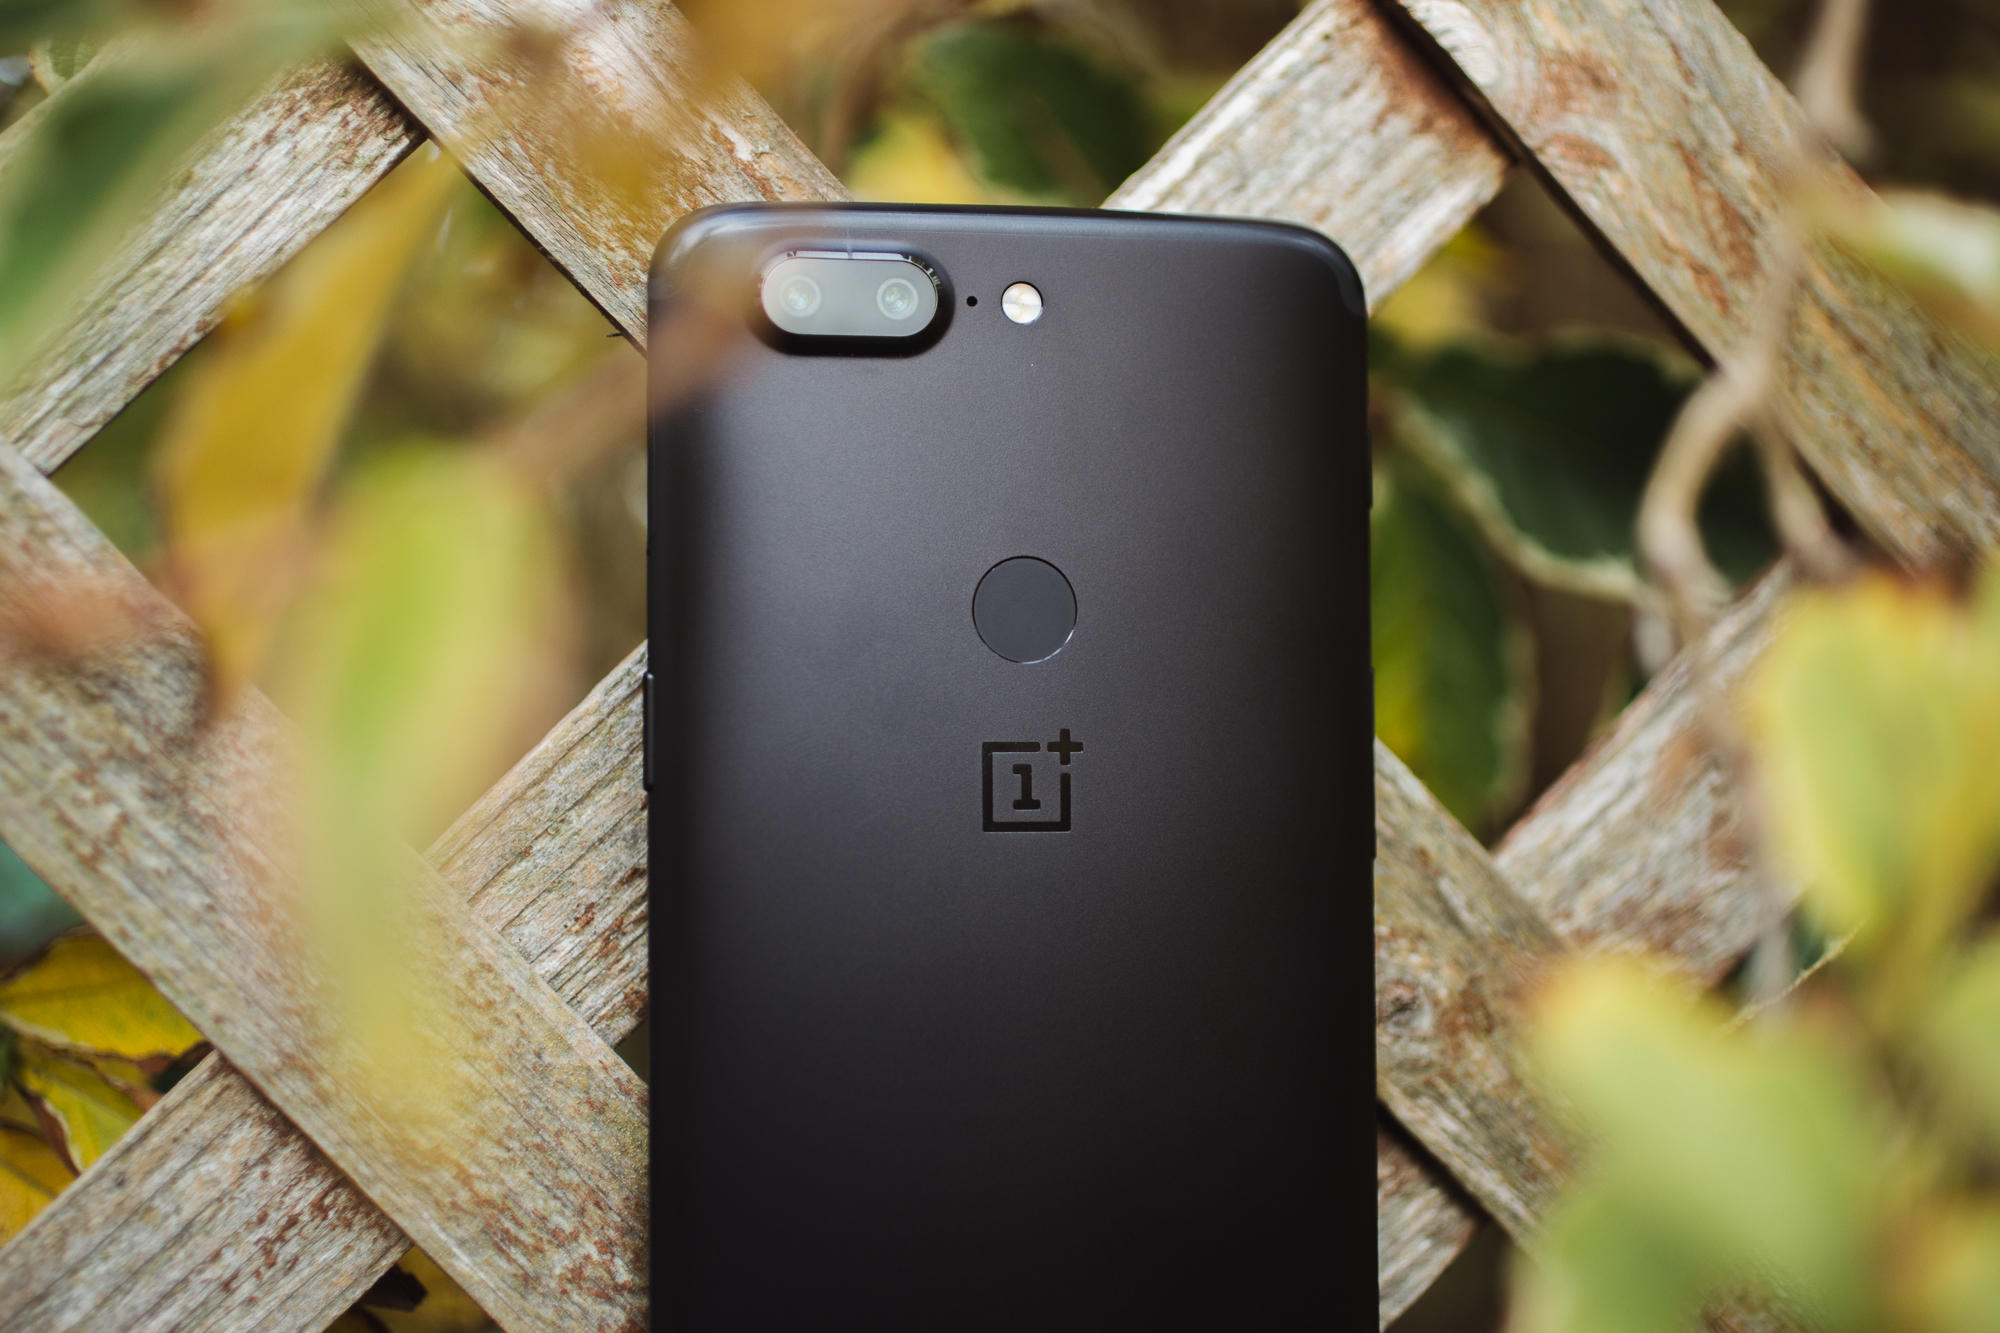 oneplus-5t-product-28